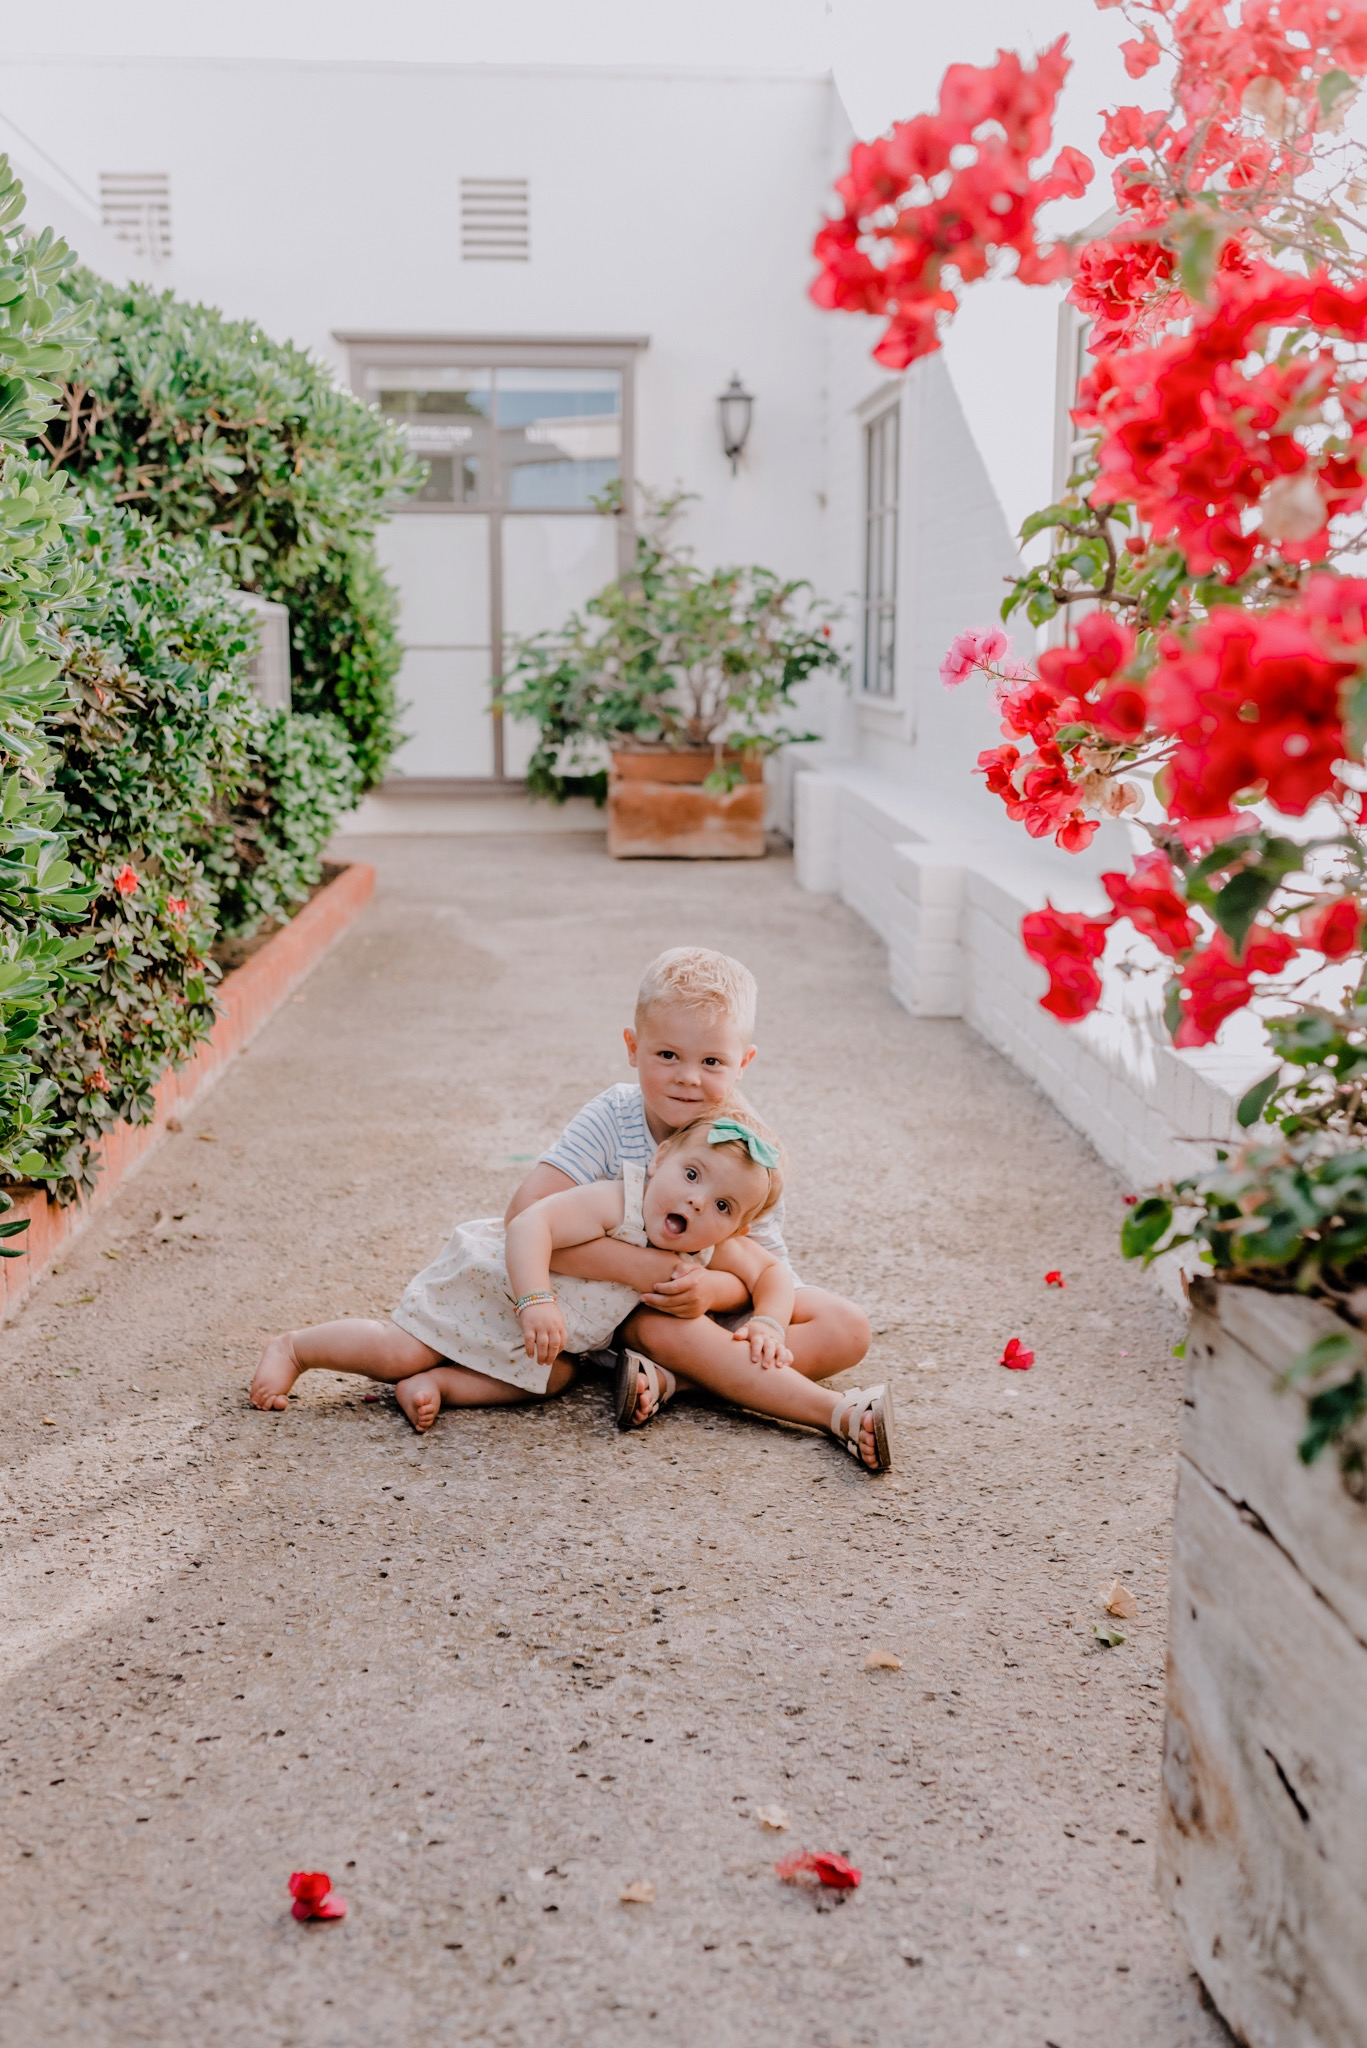 Summer Clothing by popular San Diego fashion blog, Navy Grace: image of a little boy and girl sitting outside next to a red flowering bush and white brick building and wearing a Little Poppy bow and H&M faux suede sandals.